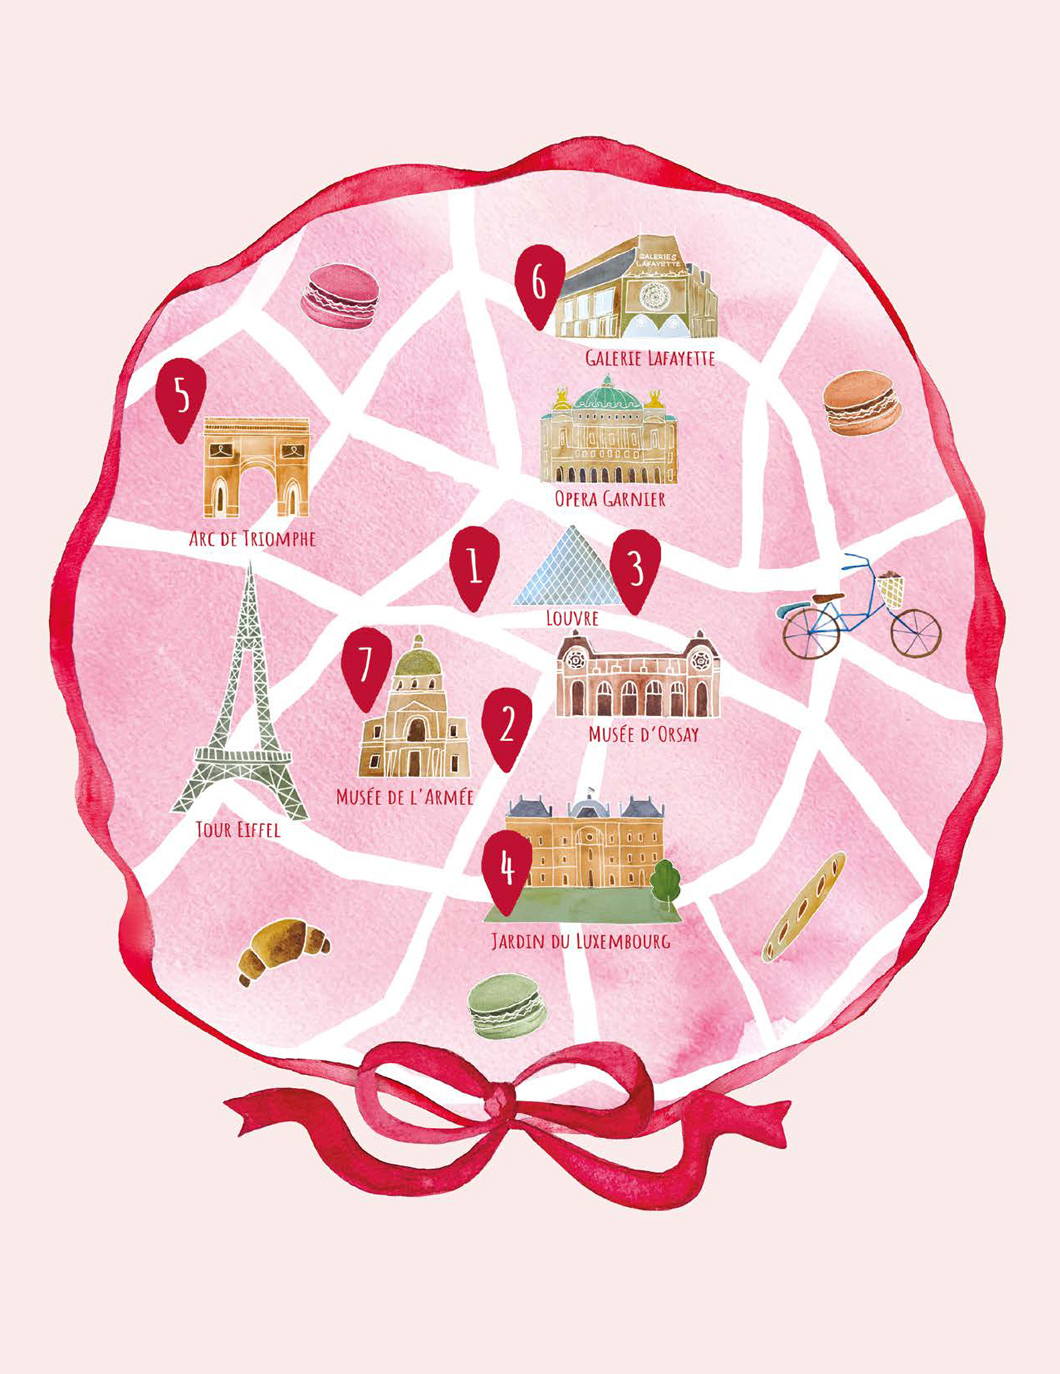 Alexandra-Motovilina_Paris-Pastry-Guide_Map-illustration